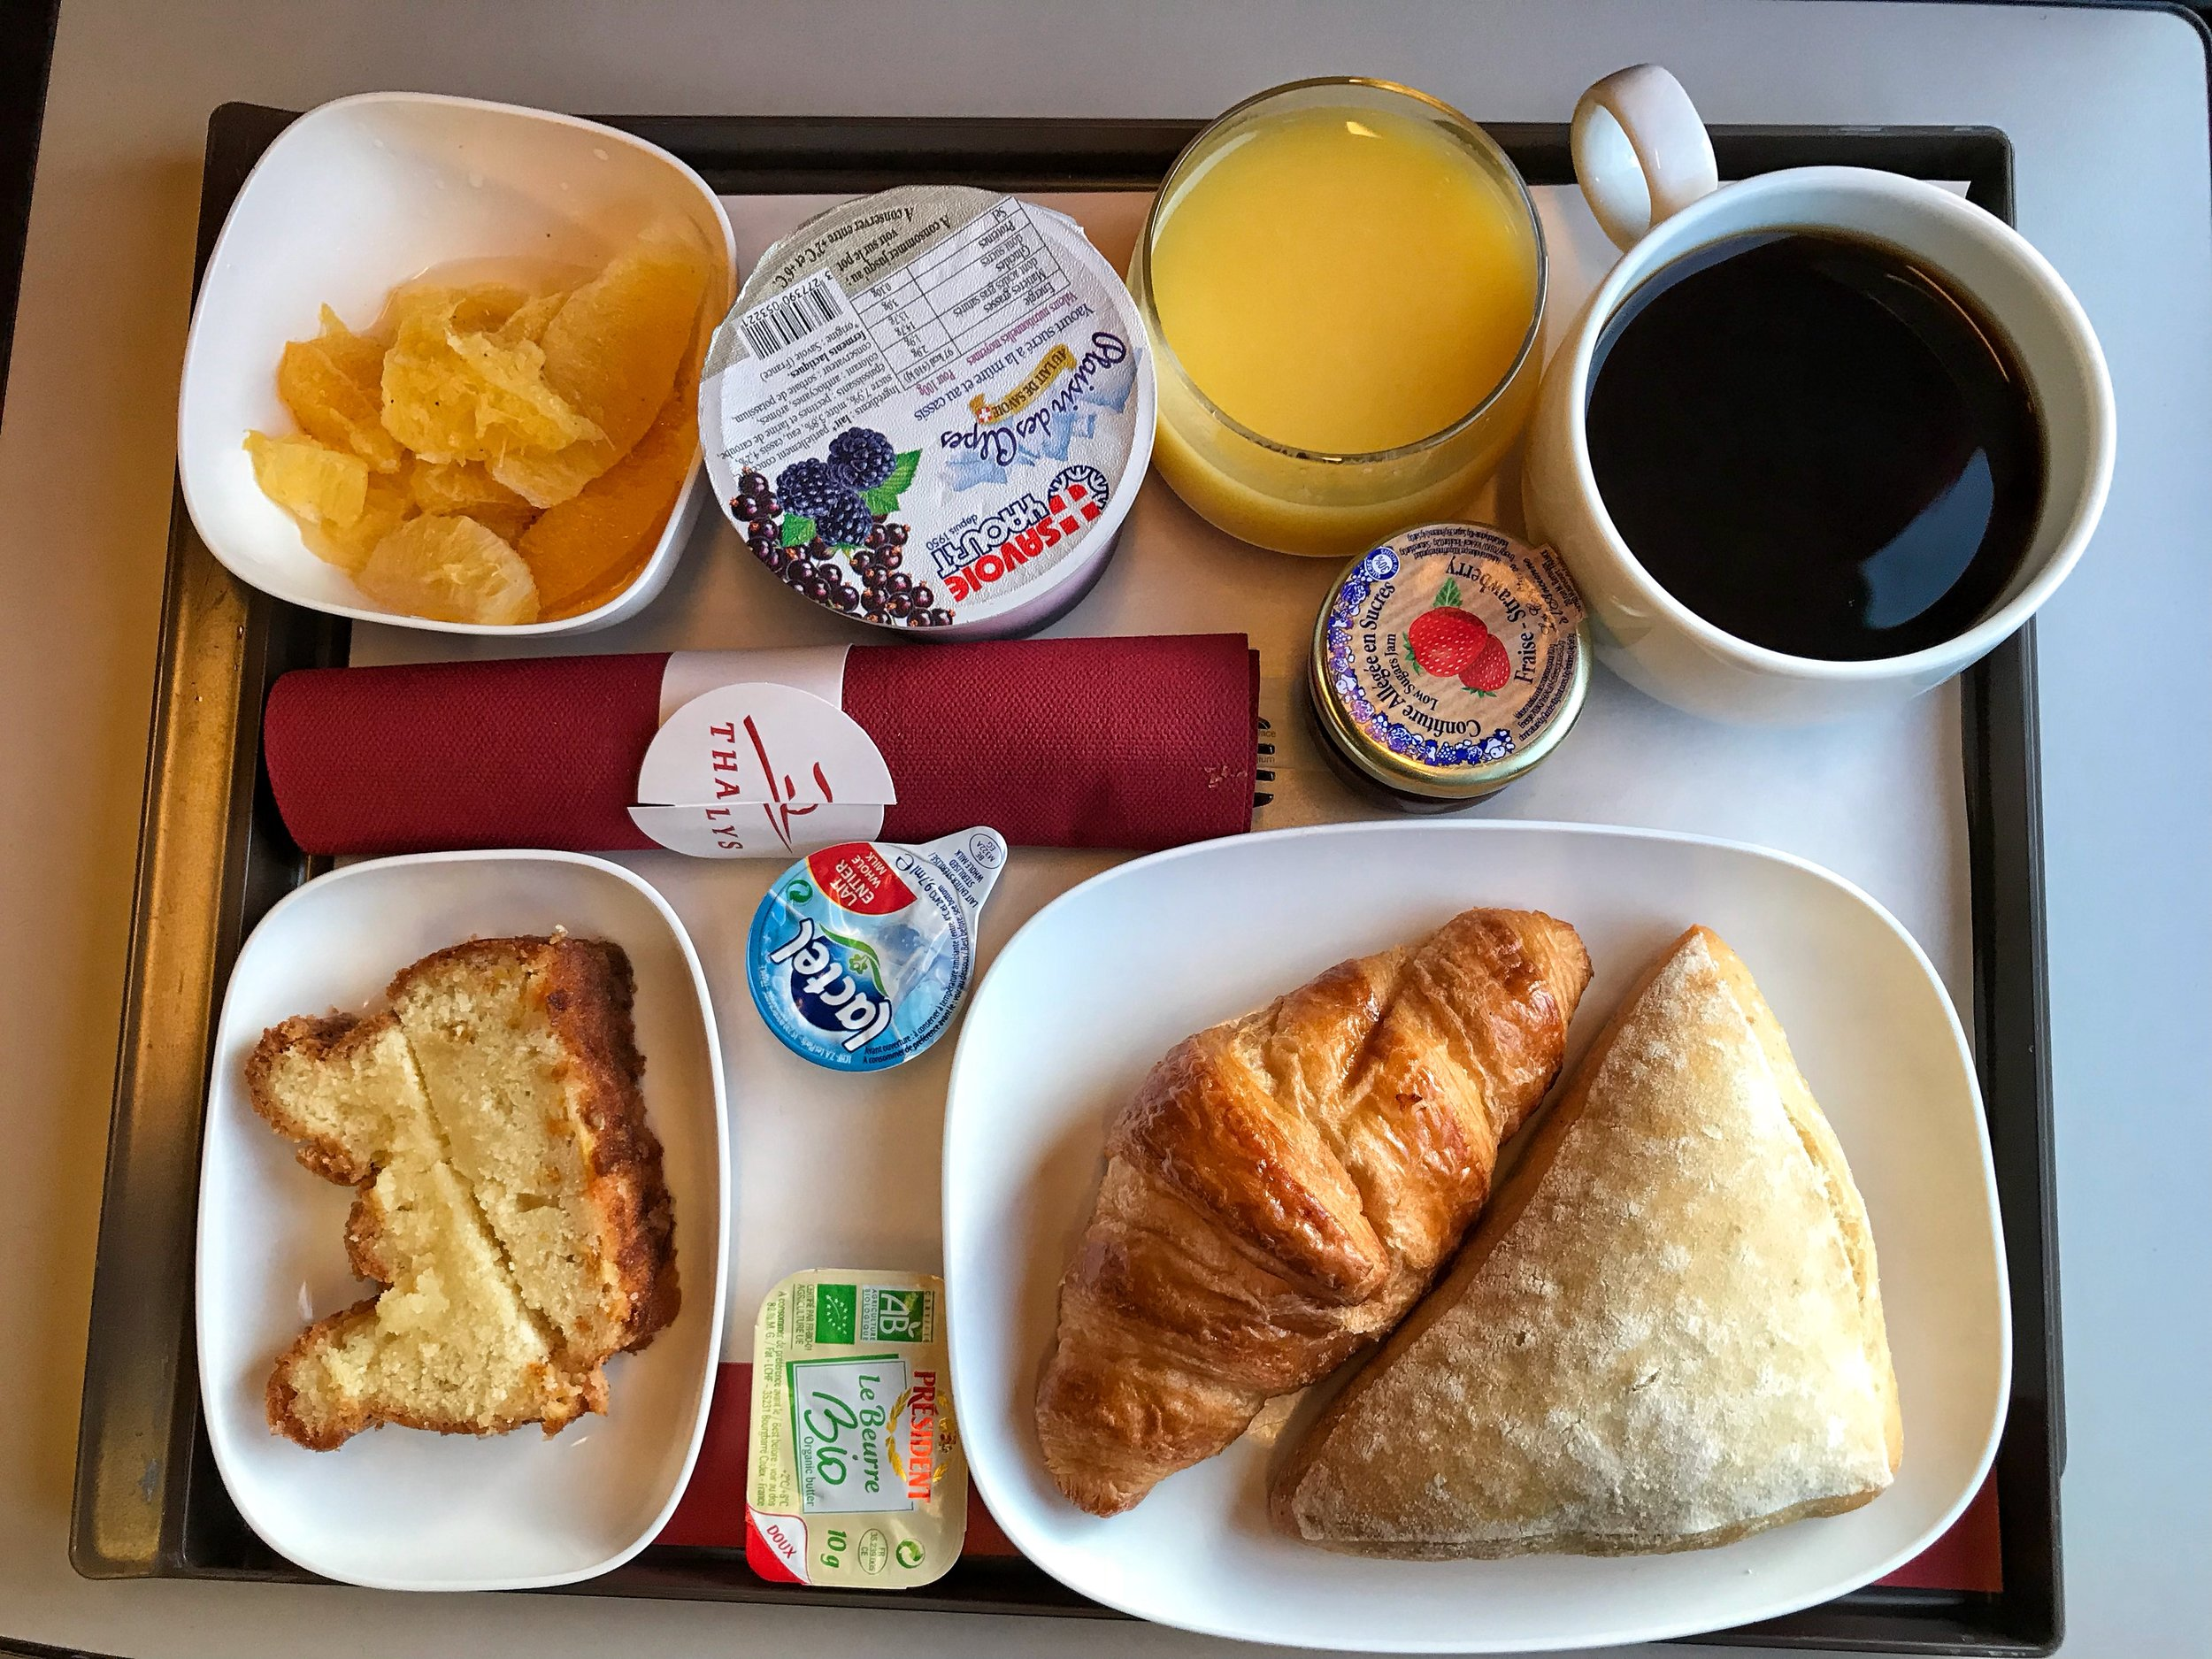 One of the meals served to First class Thalys customers.